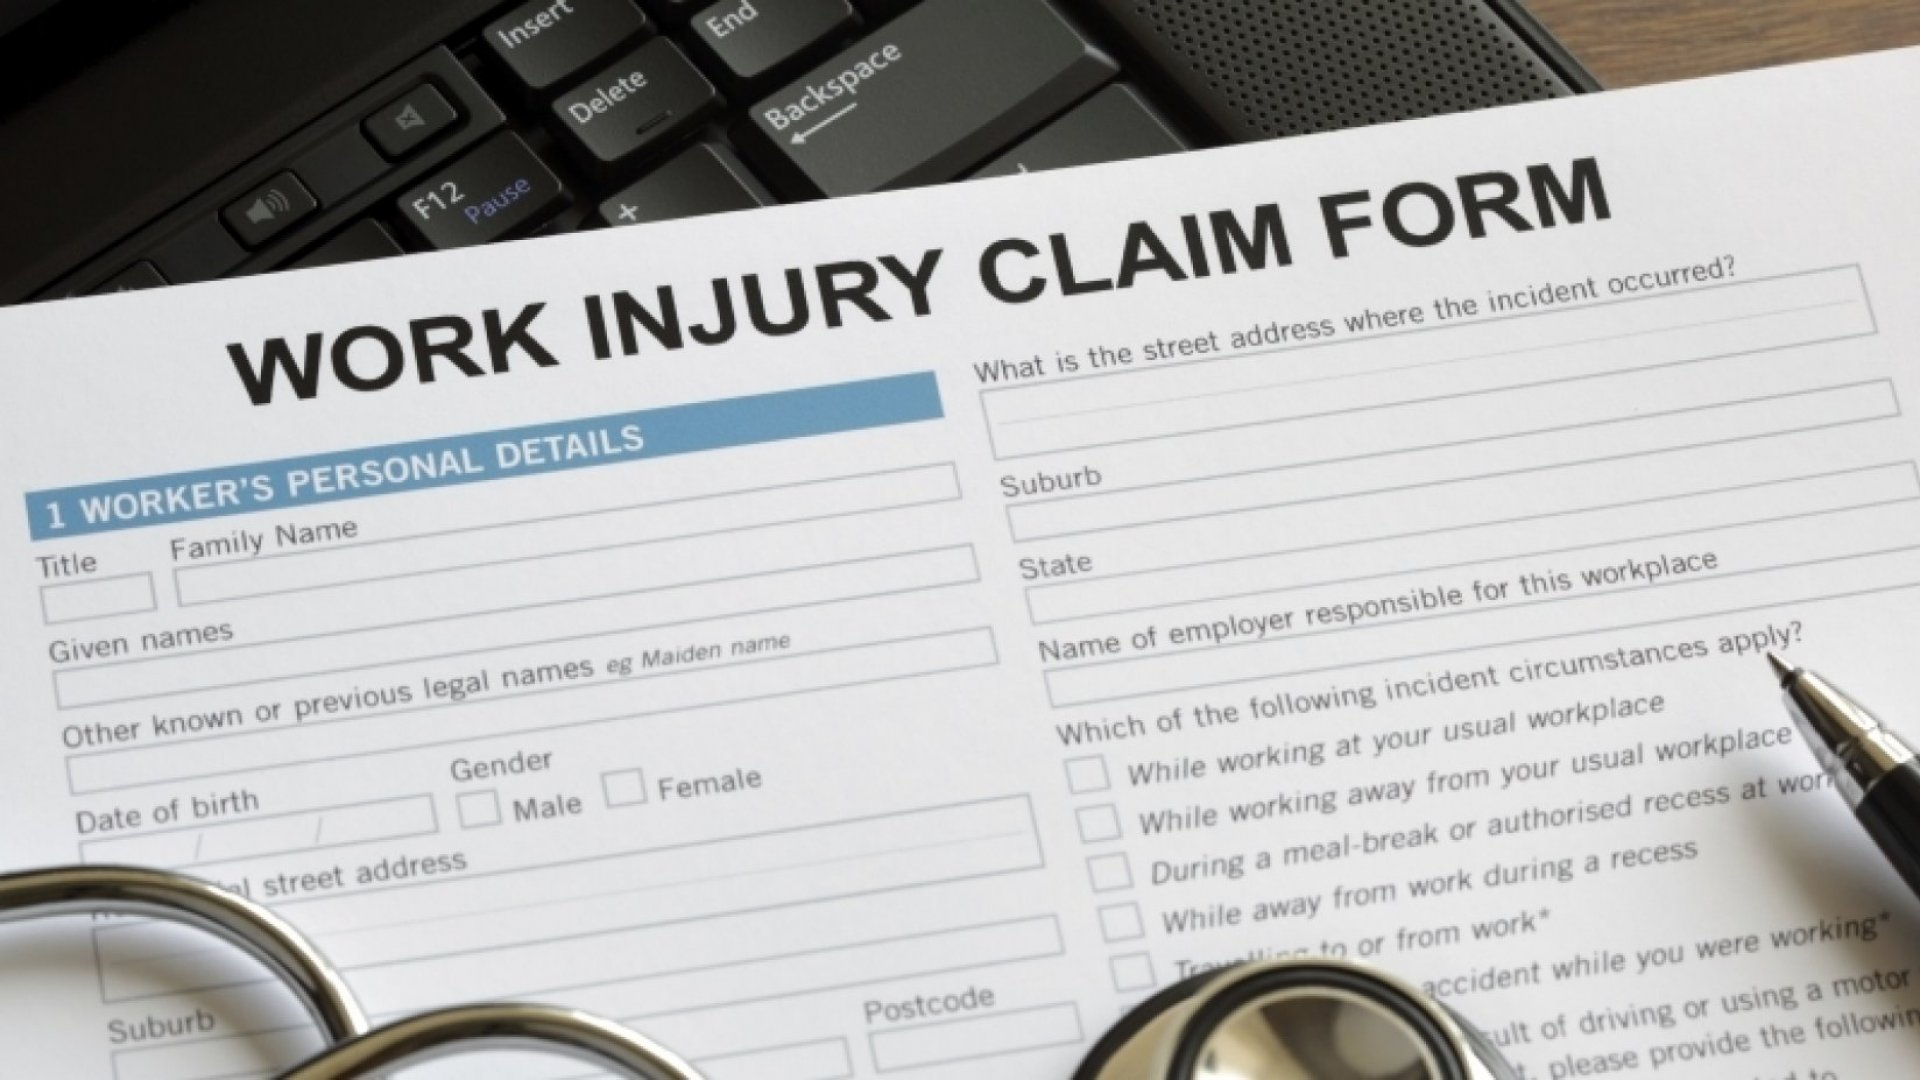 How Social Media Posts Can Negatively Impact Your Injury Claim